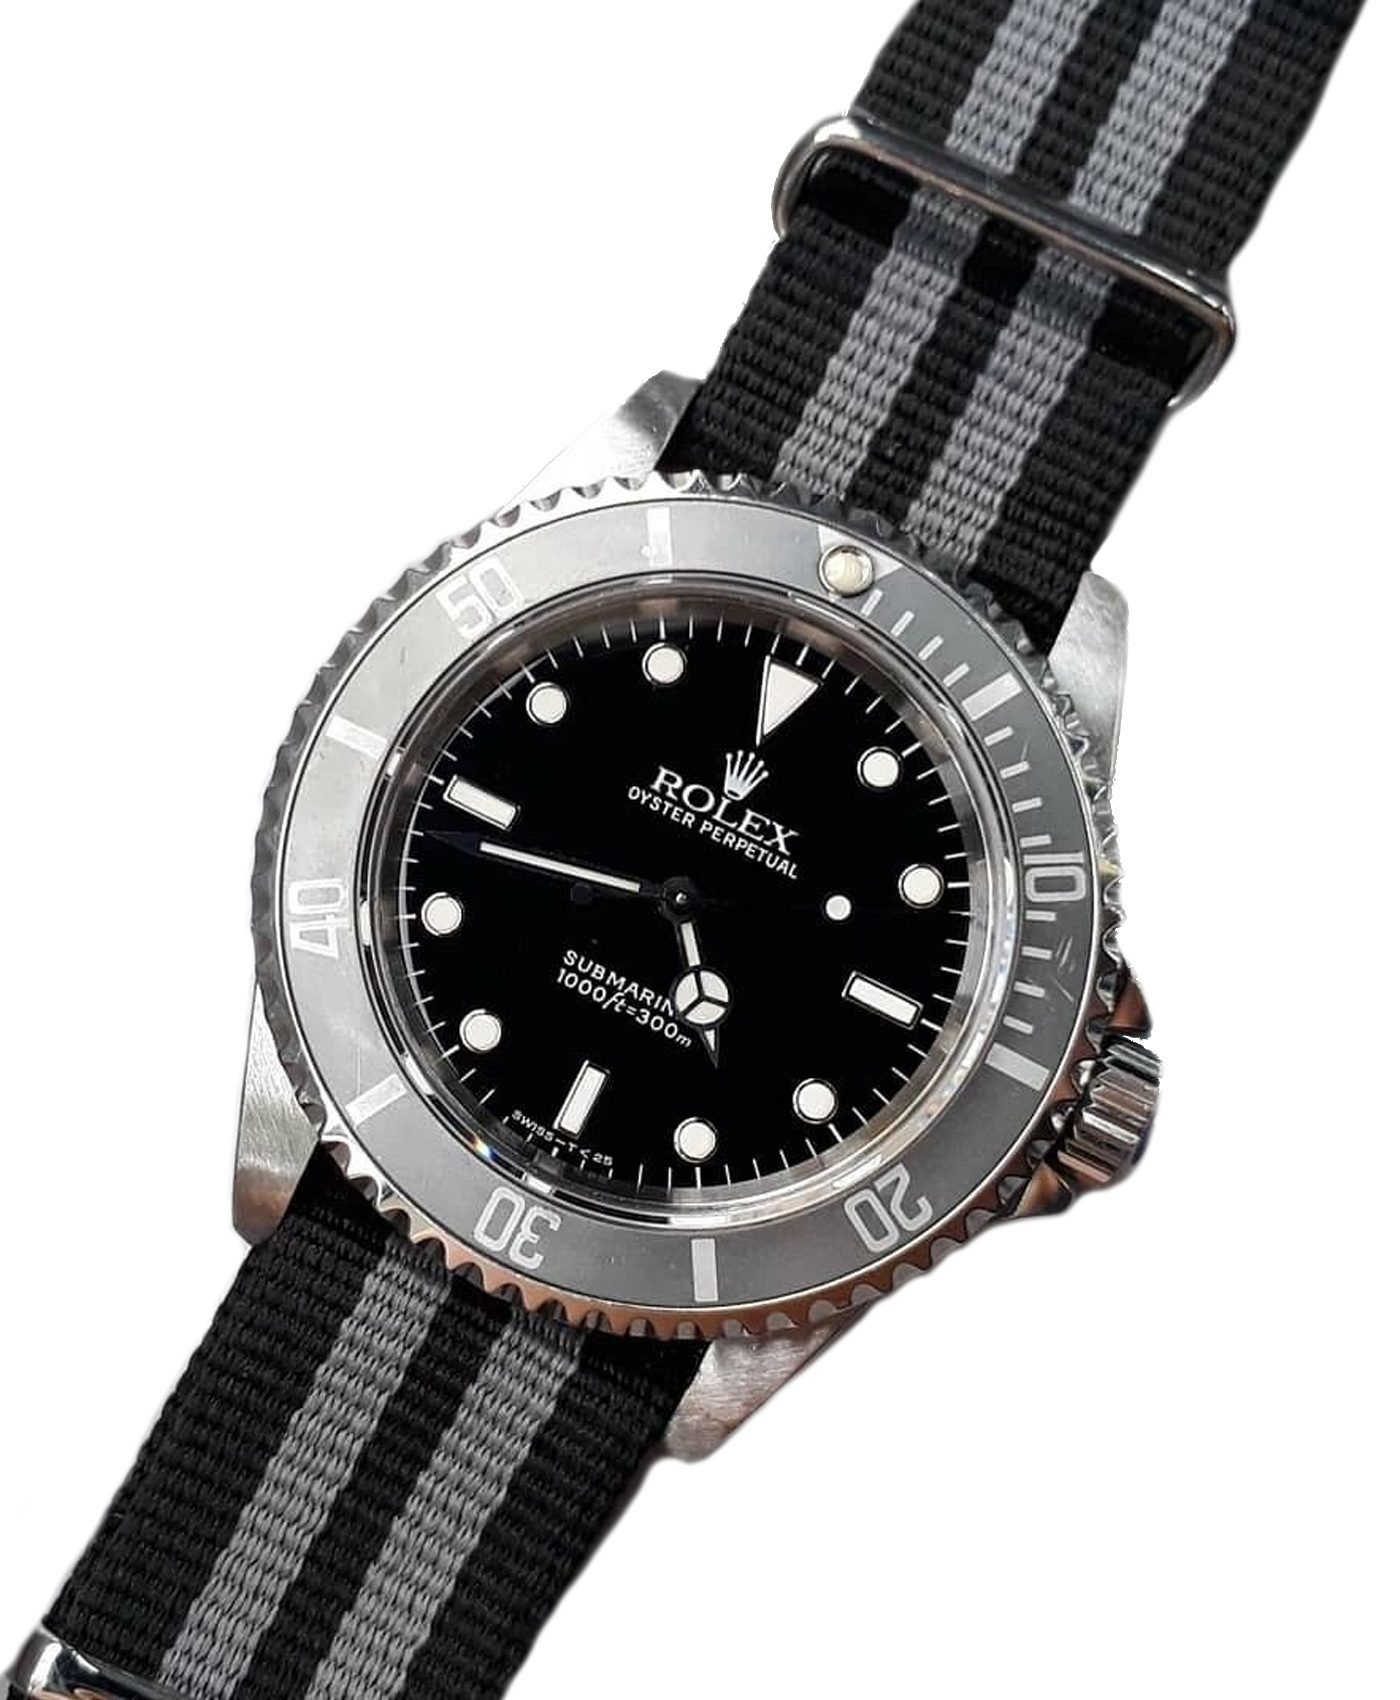 Rolex Submariner military vintage on Black and Grey striped Nato strap James Bond style